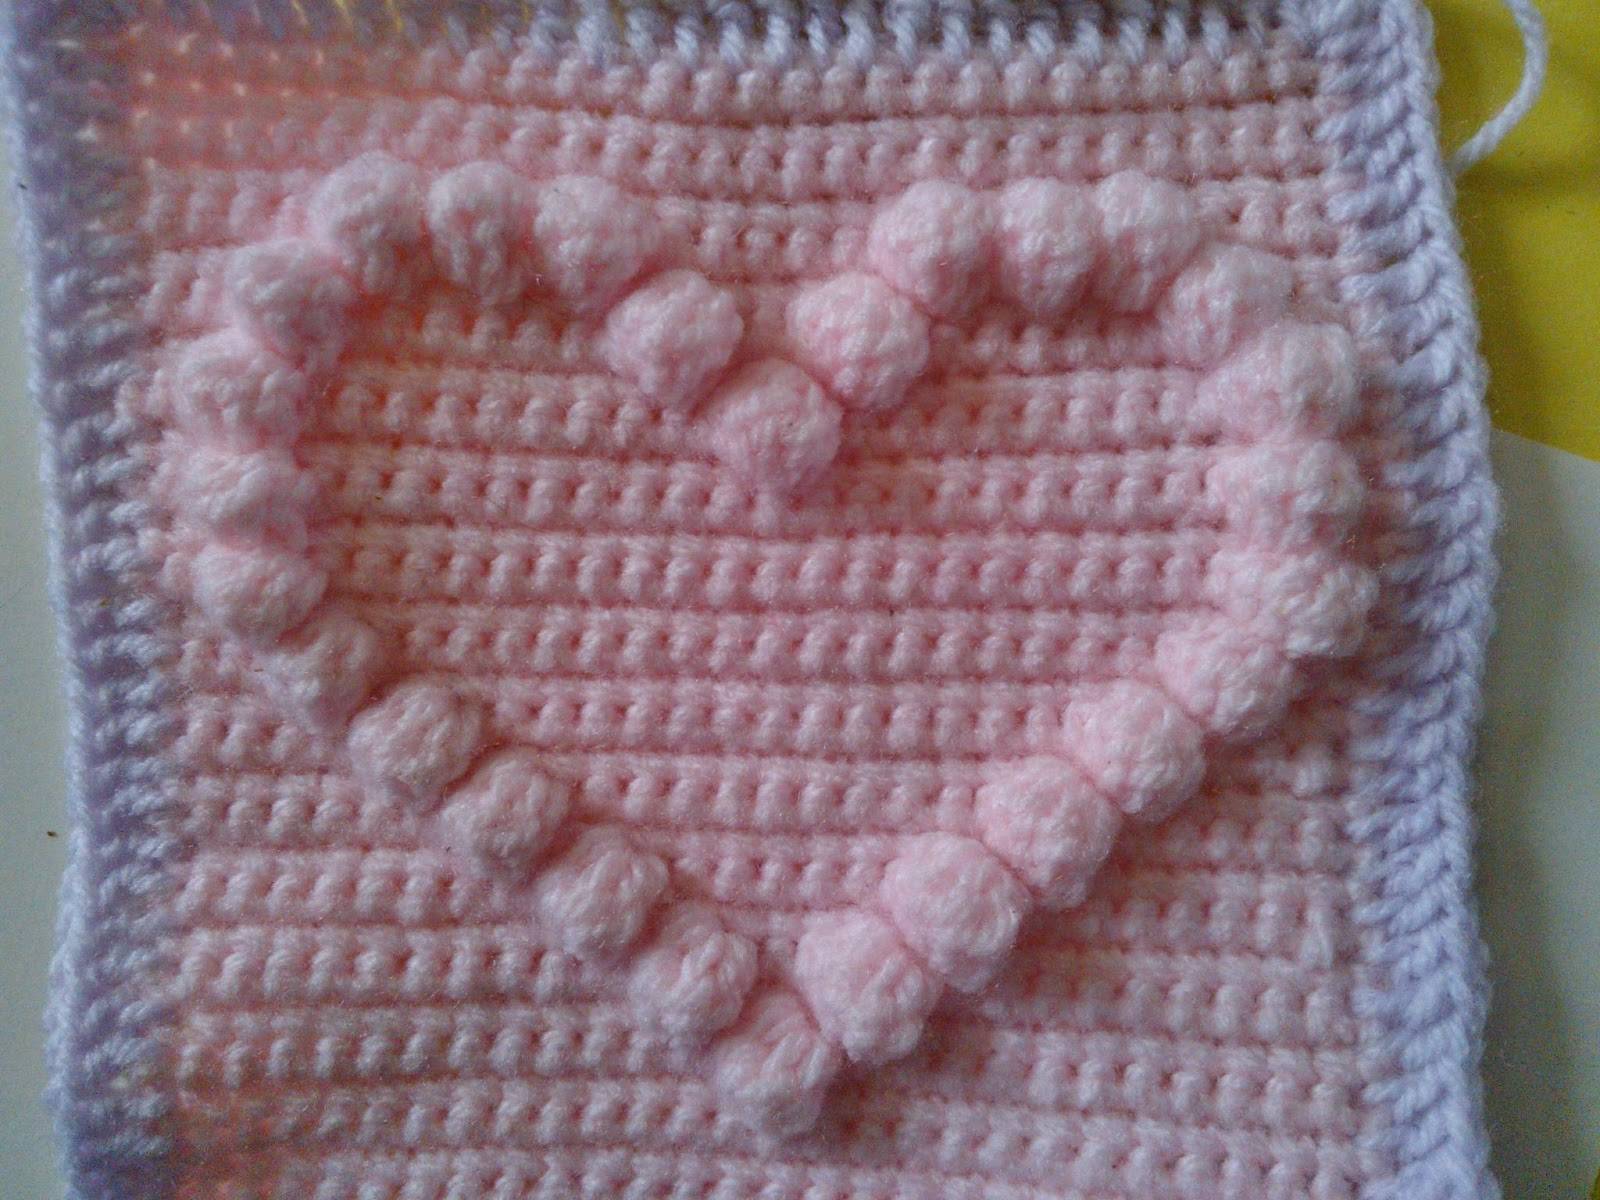 Crochetsnugglies bobble heart pattern bobble heart pattern bankloansurffo Images